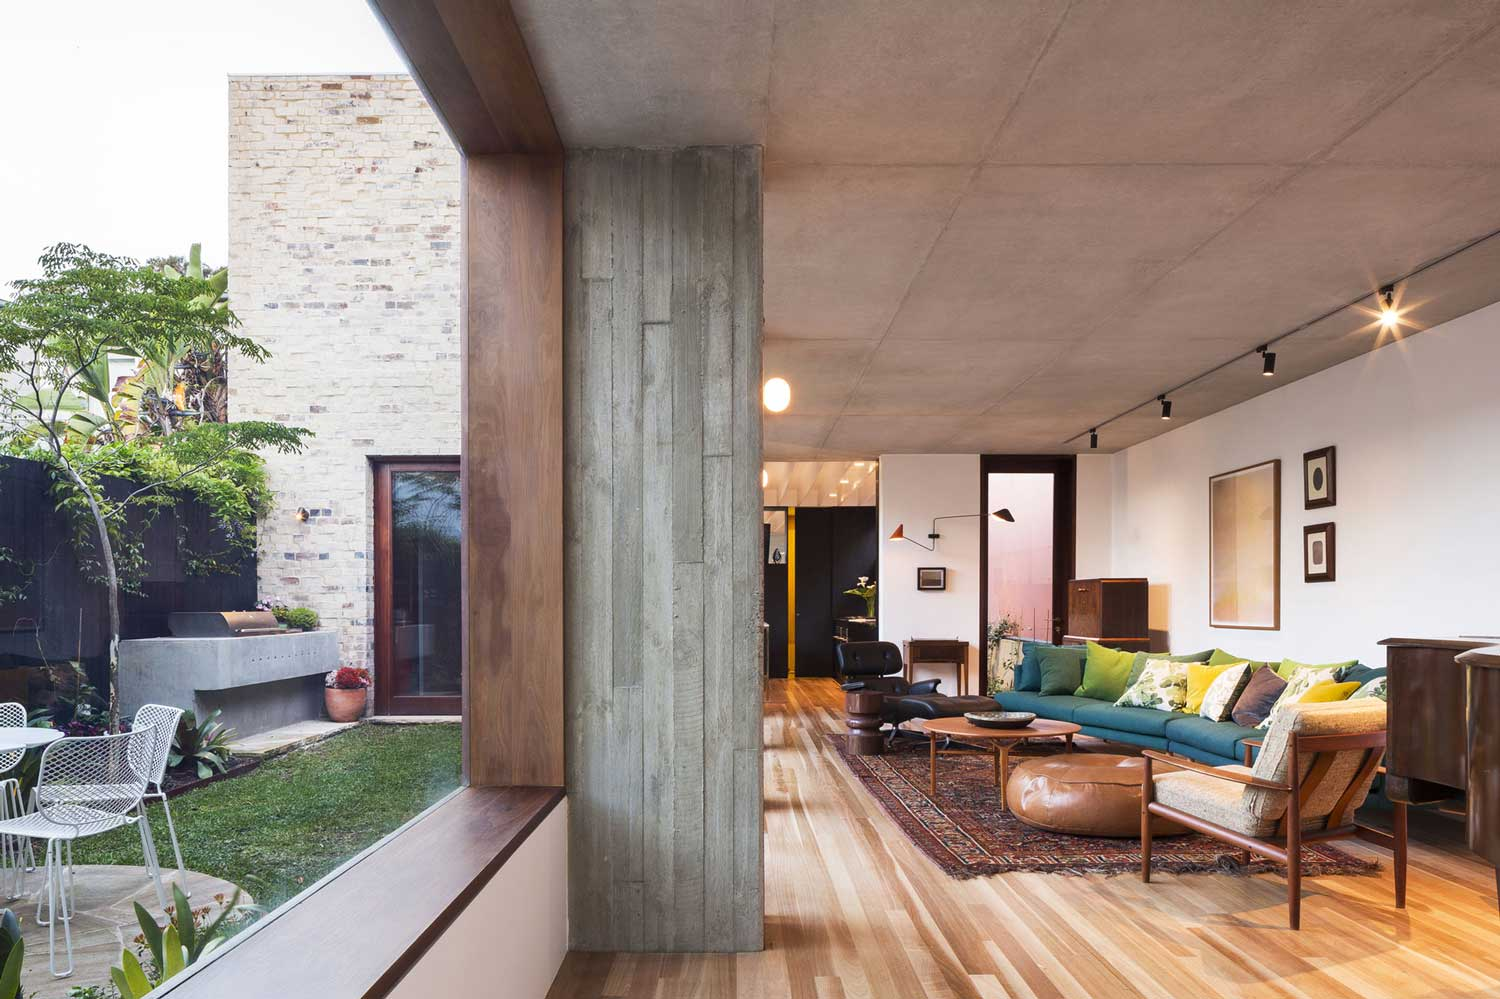 Courtyard House by Aileen Sage Architects. Photo by Tom Ferguson | Yellowtrace